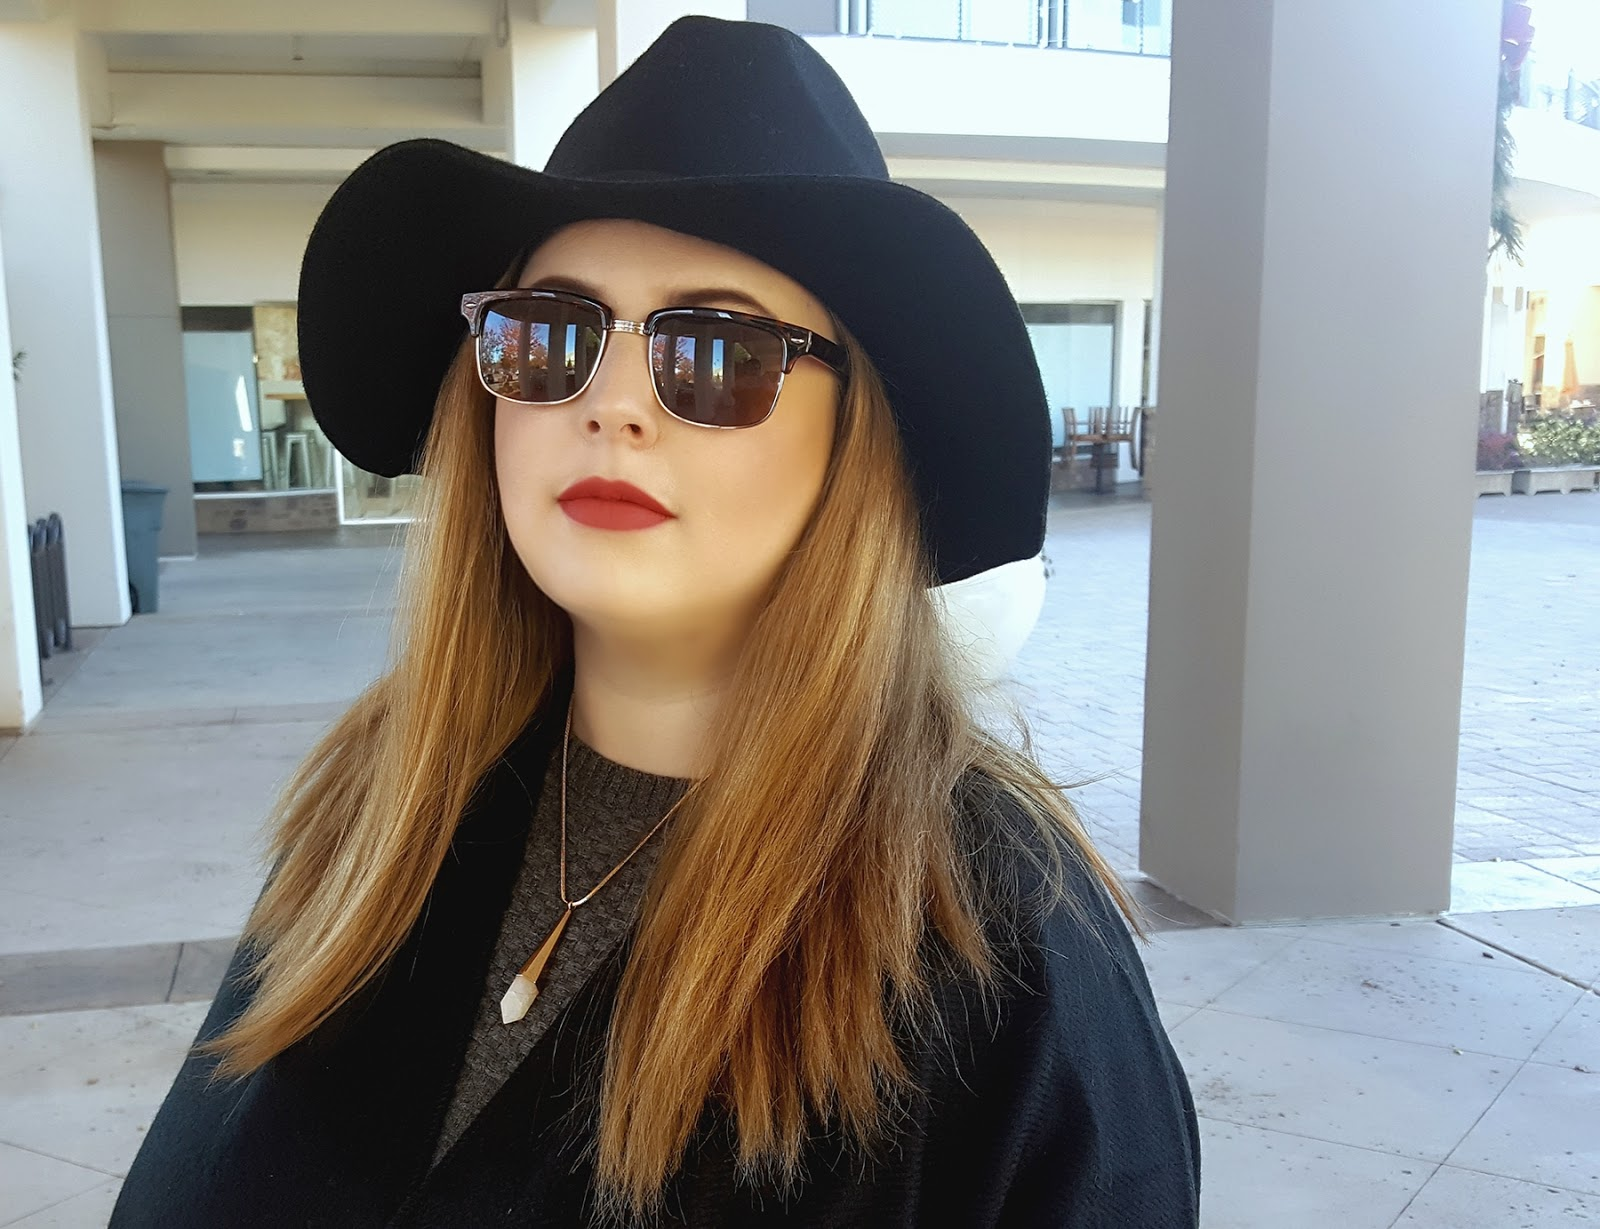 winter-makeup, face-of-the-day, fotd, deep-red-lips, dirty-blonde-hair, target-women's-rancher-hat